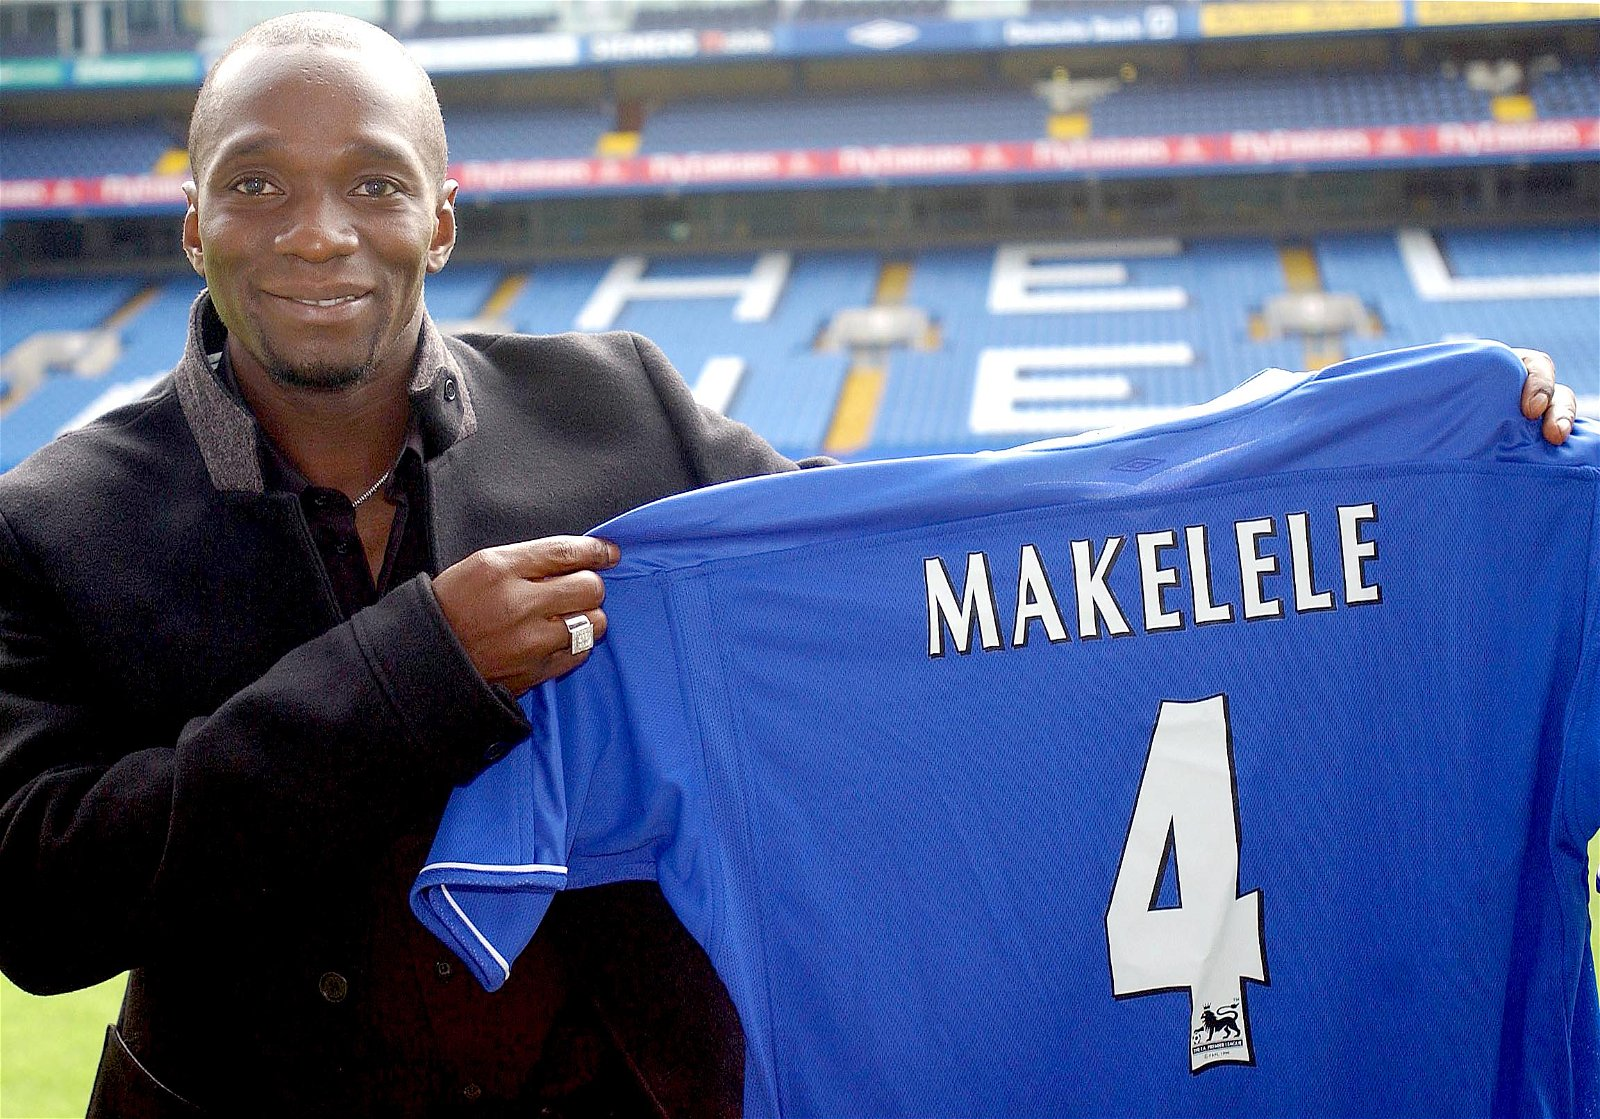 The Word: Recognition for Kante owes much to how Makelele changed views of play-breakers